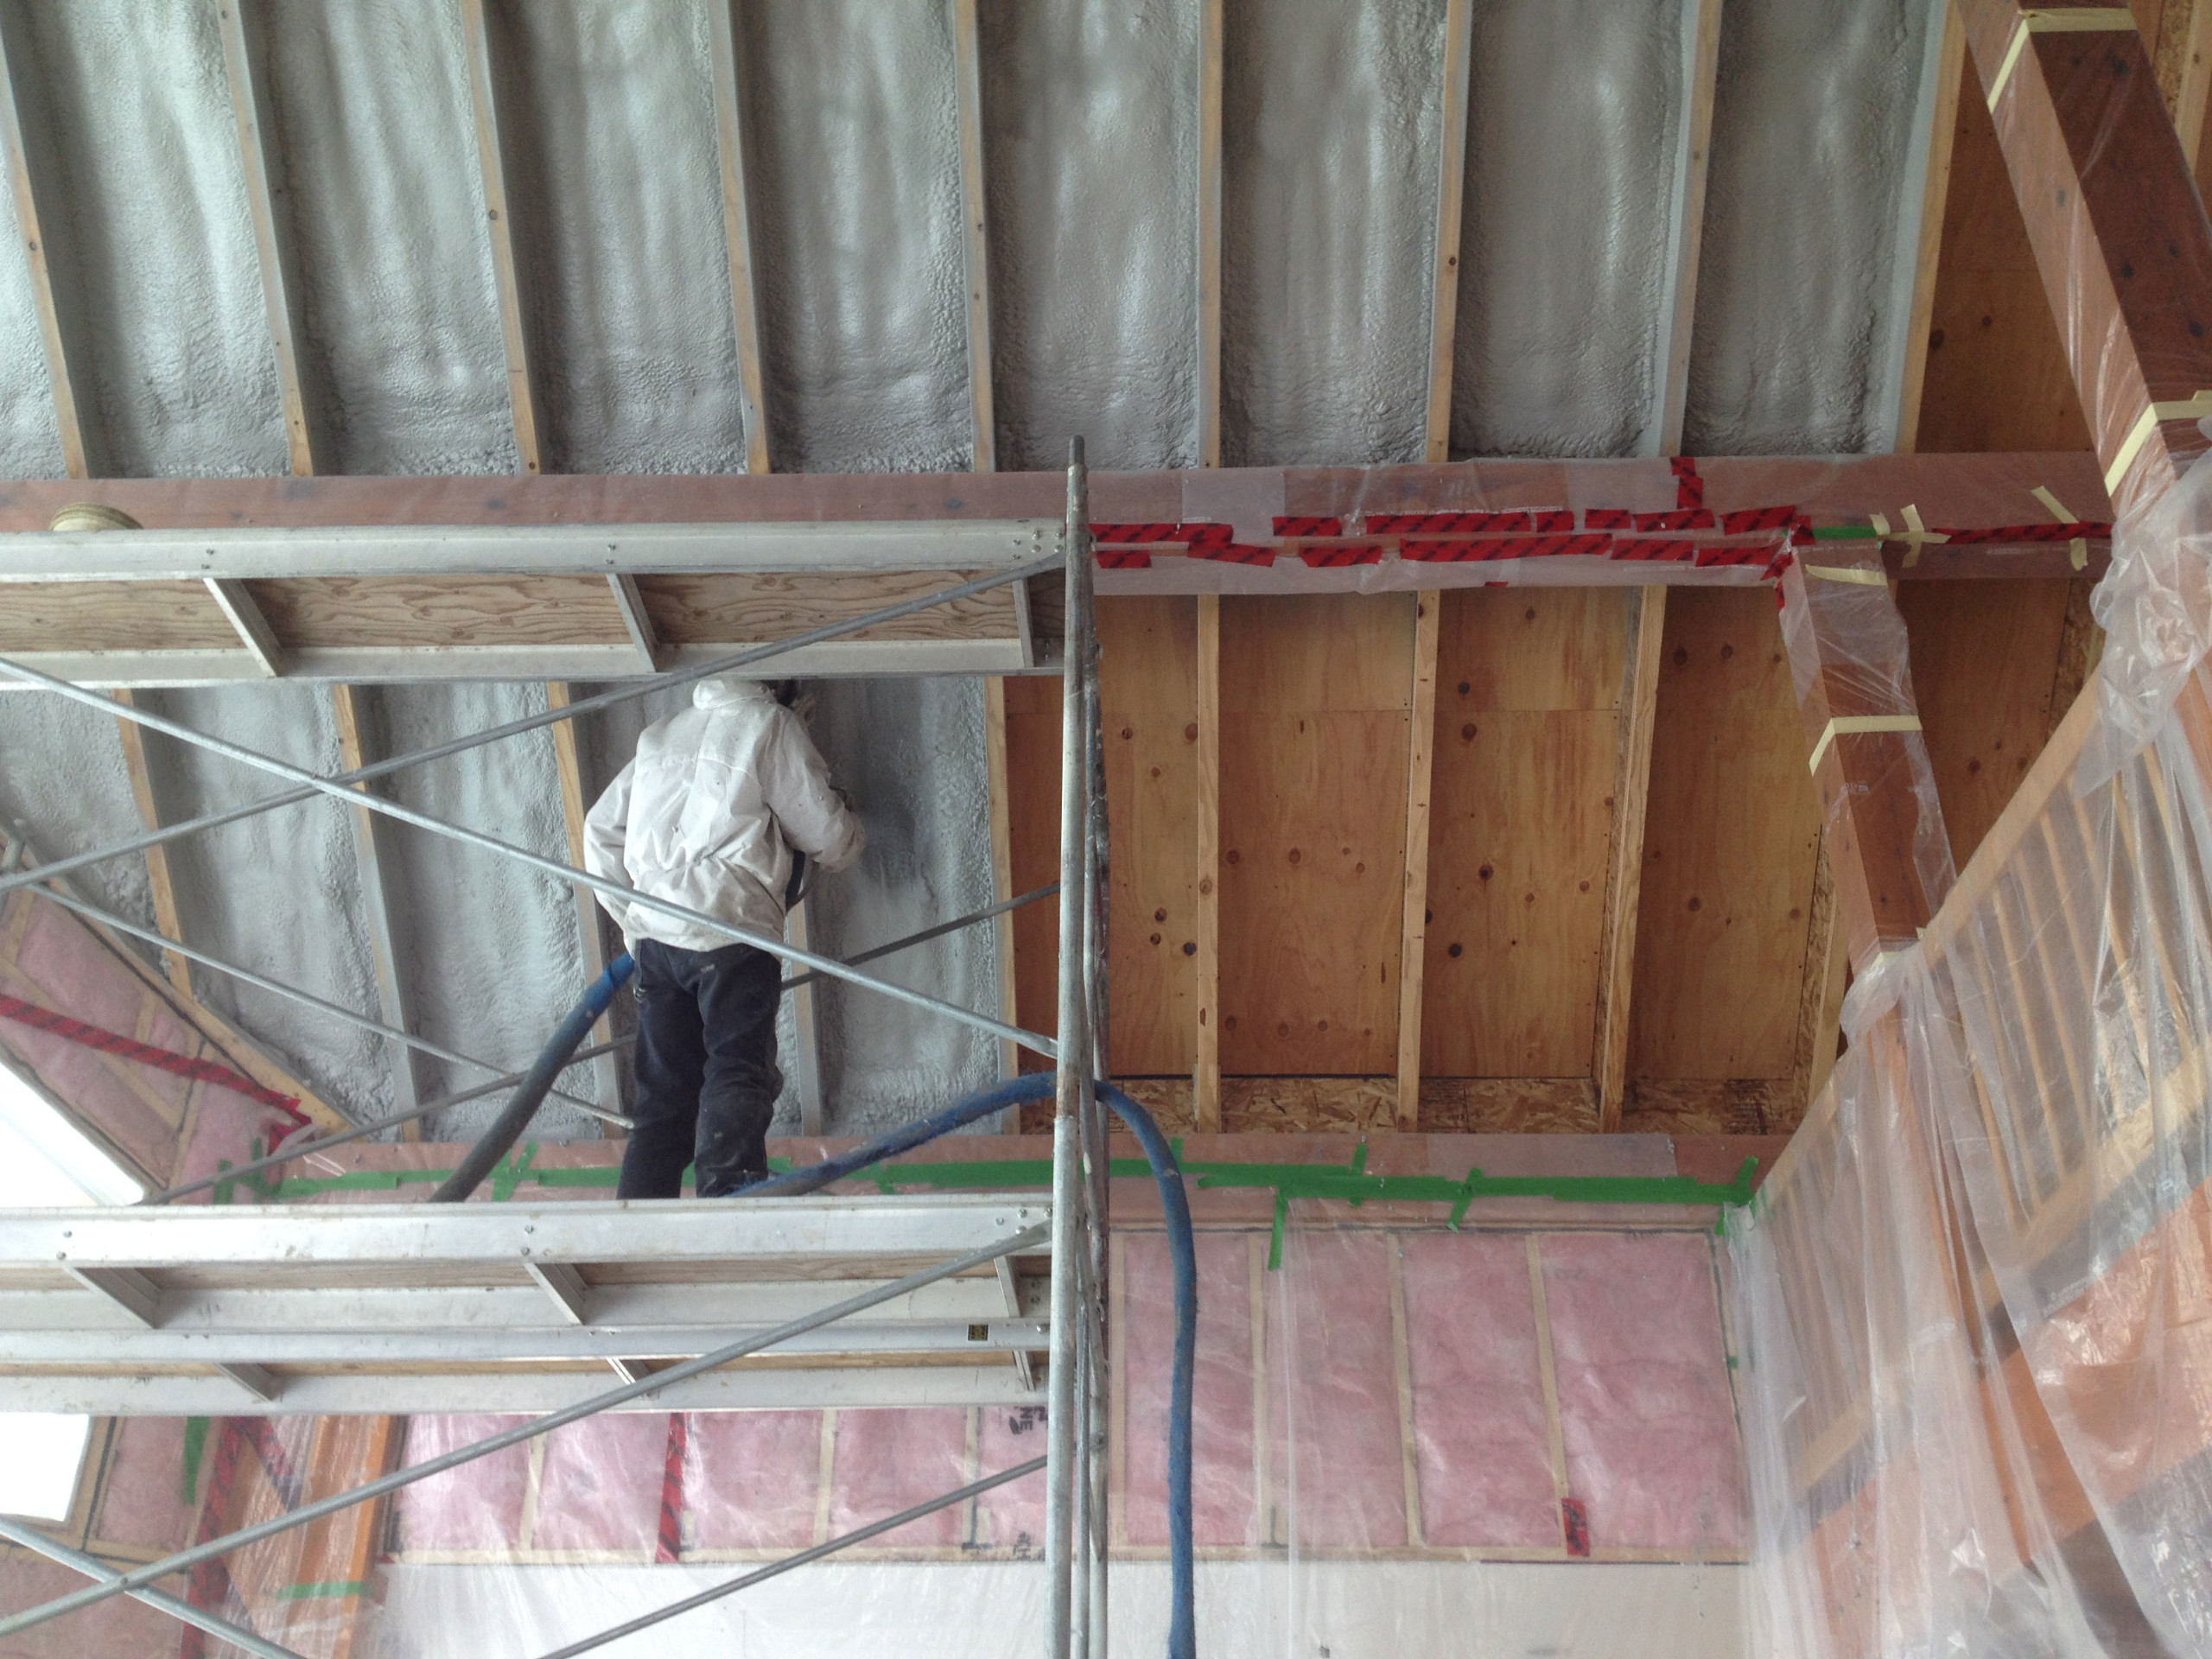 Worker spraying roof insulation